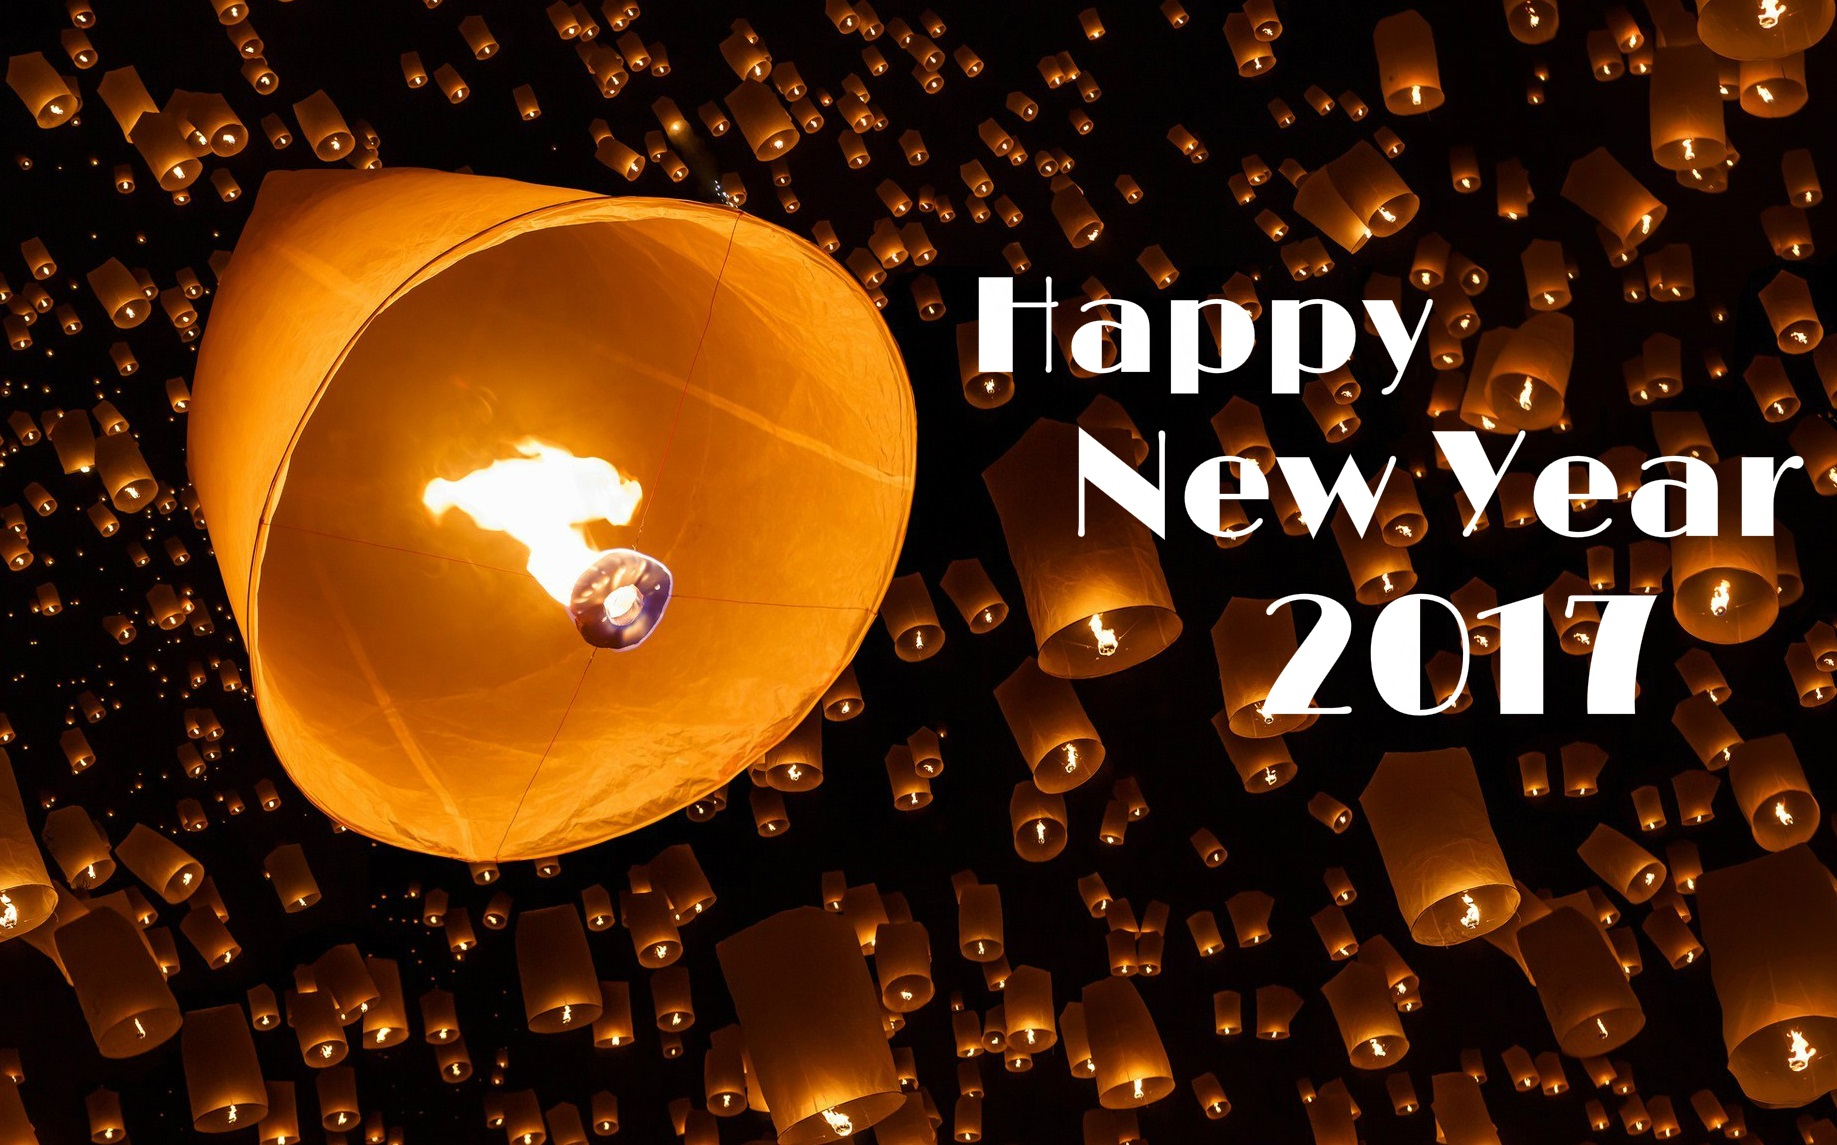 New Year Hd Wallpapers 2017 21